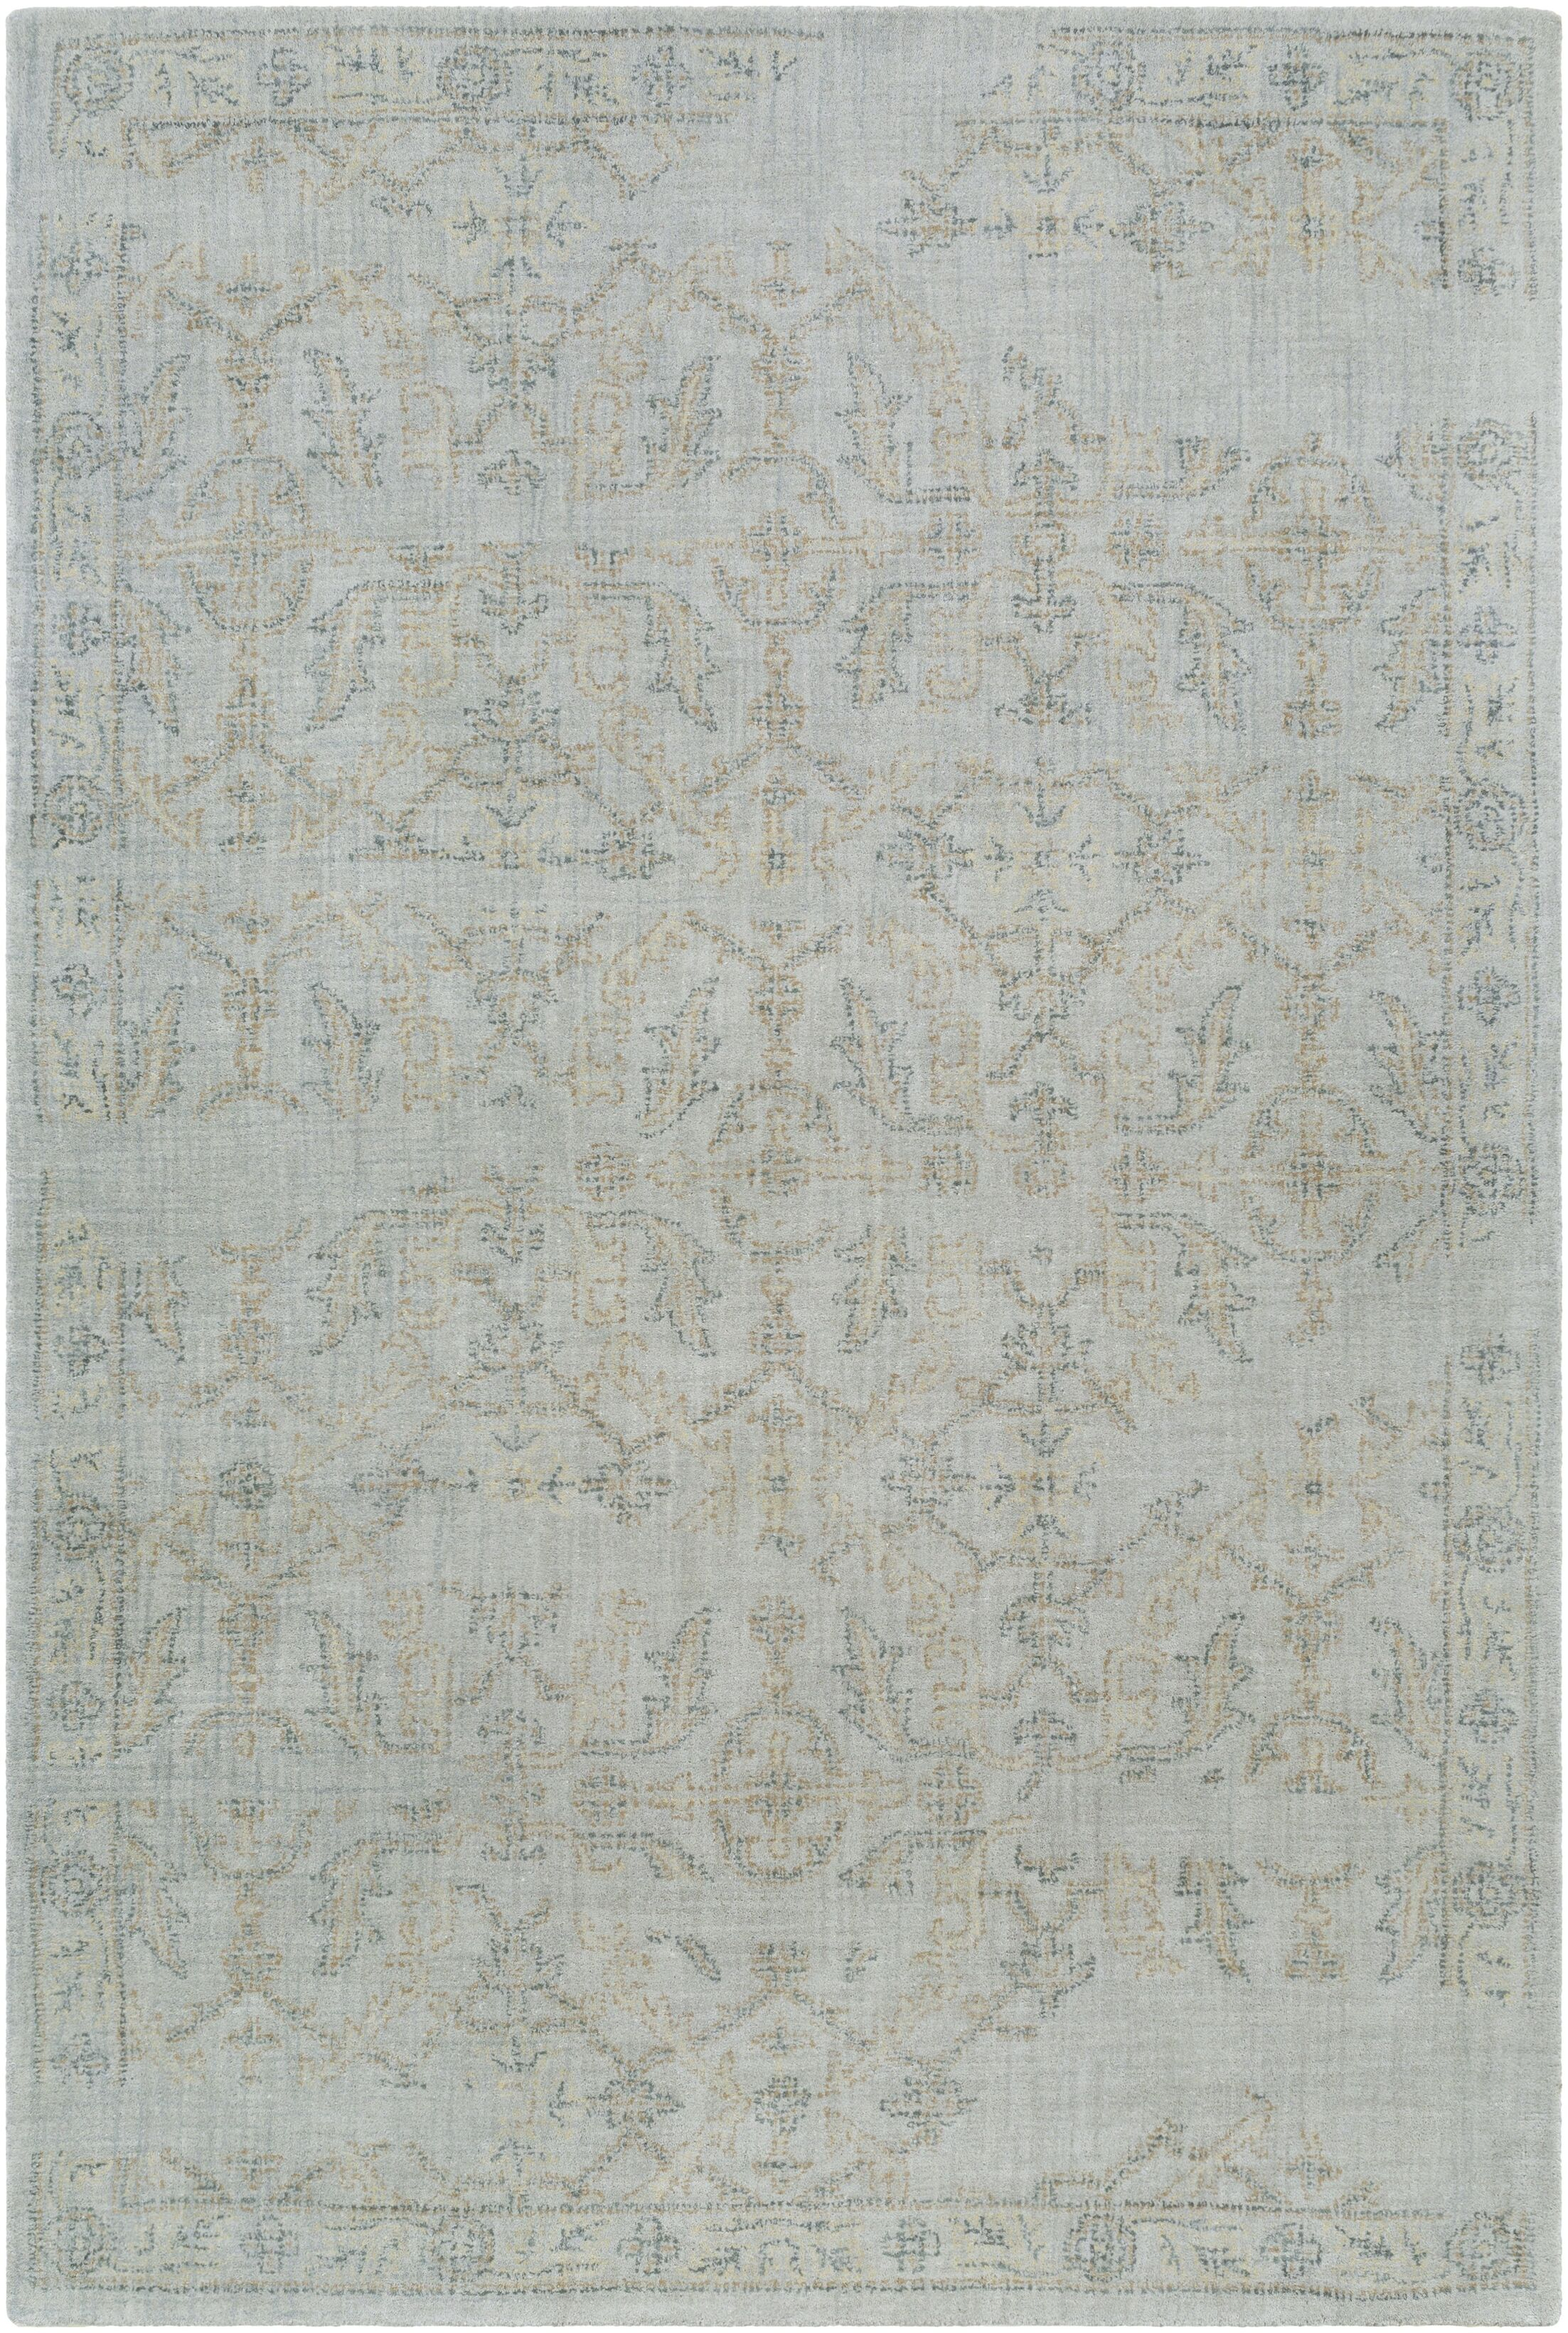 Alexis Hand-Tufted Medium Gray/Sage Area Rug Rug Size: Rectangle 5' x 7'6